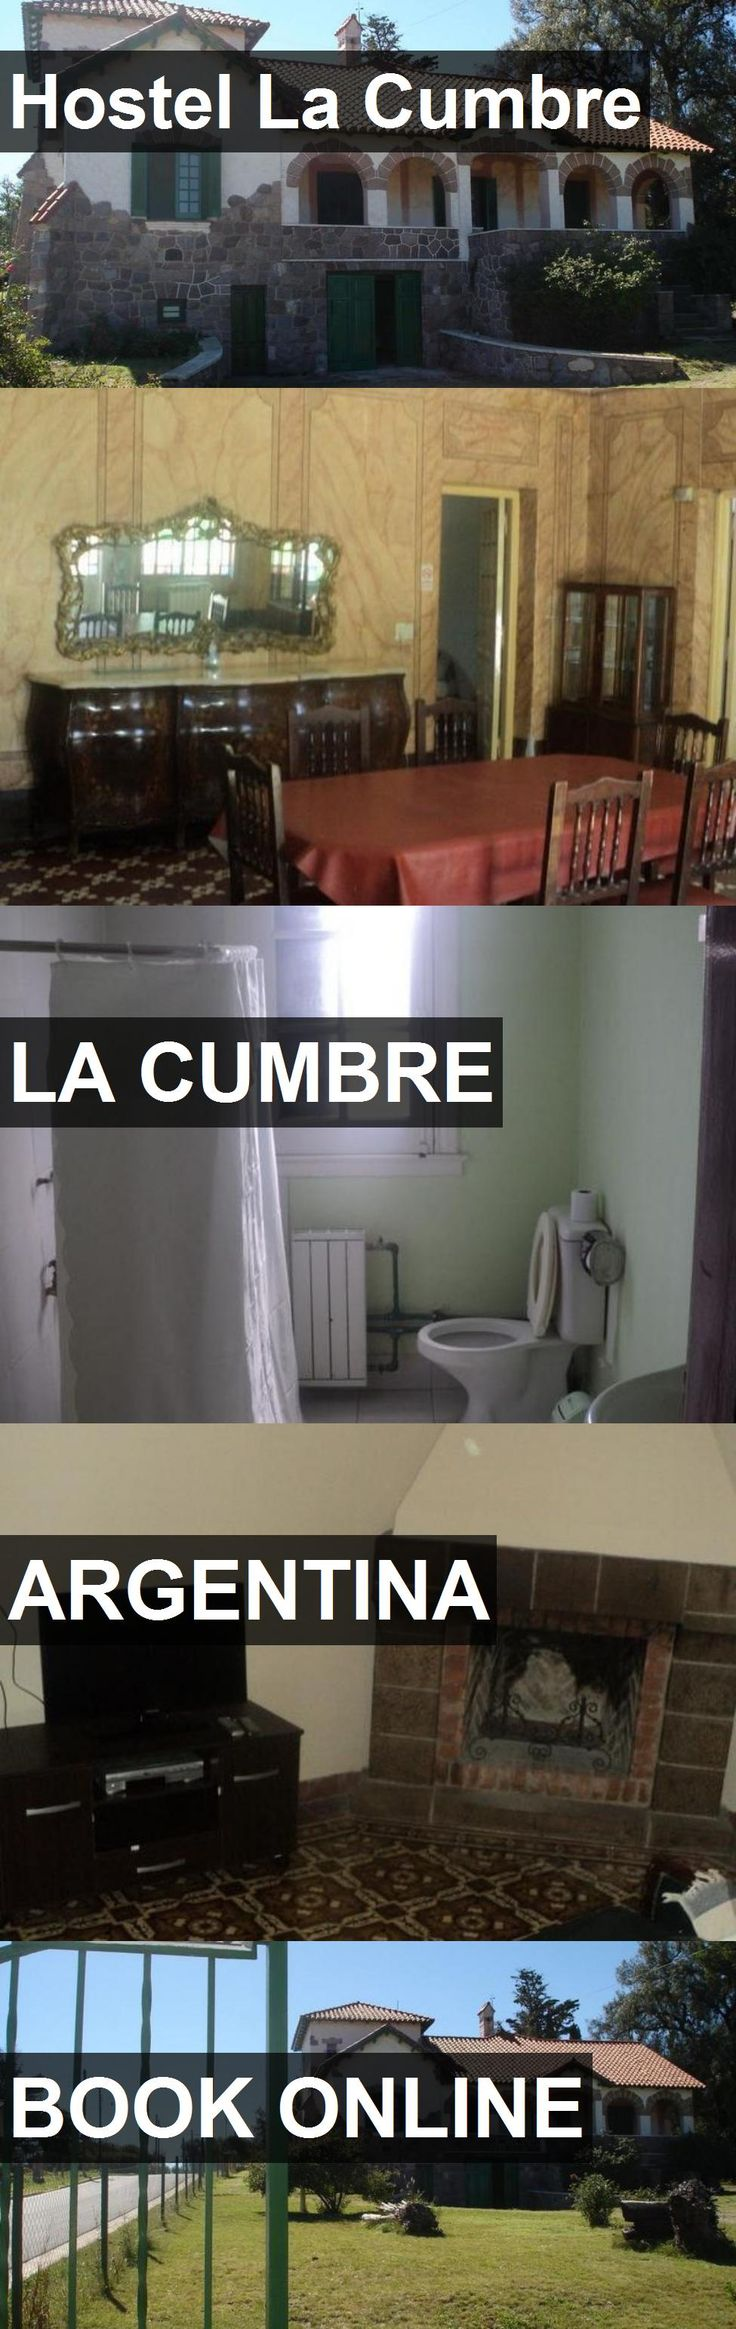 Hostel La Cumbre in La Cumbre, Argentina. For more information, photos, reviews and best prices please follow the link. #Argentina #LaCumbre #travel #vacation #hostel